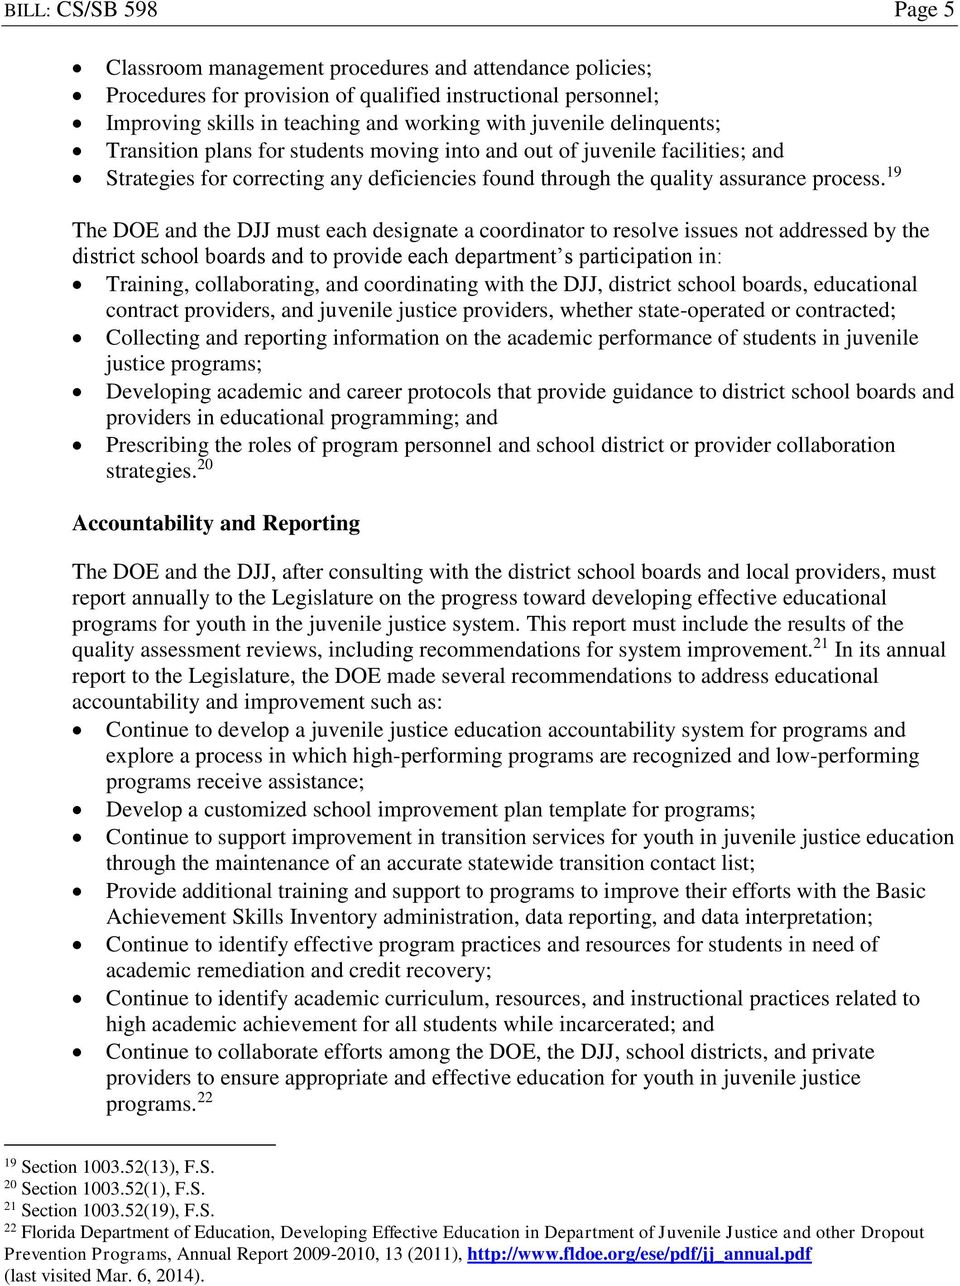 19 The DOE and the DJJ must each designate a coordinator to resolve issues not addressed by the district school boards and to provide each department s participation in: Training, collaborating, and